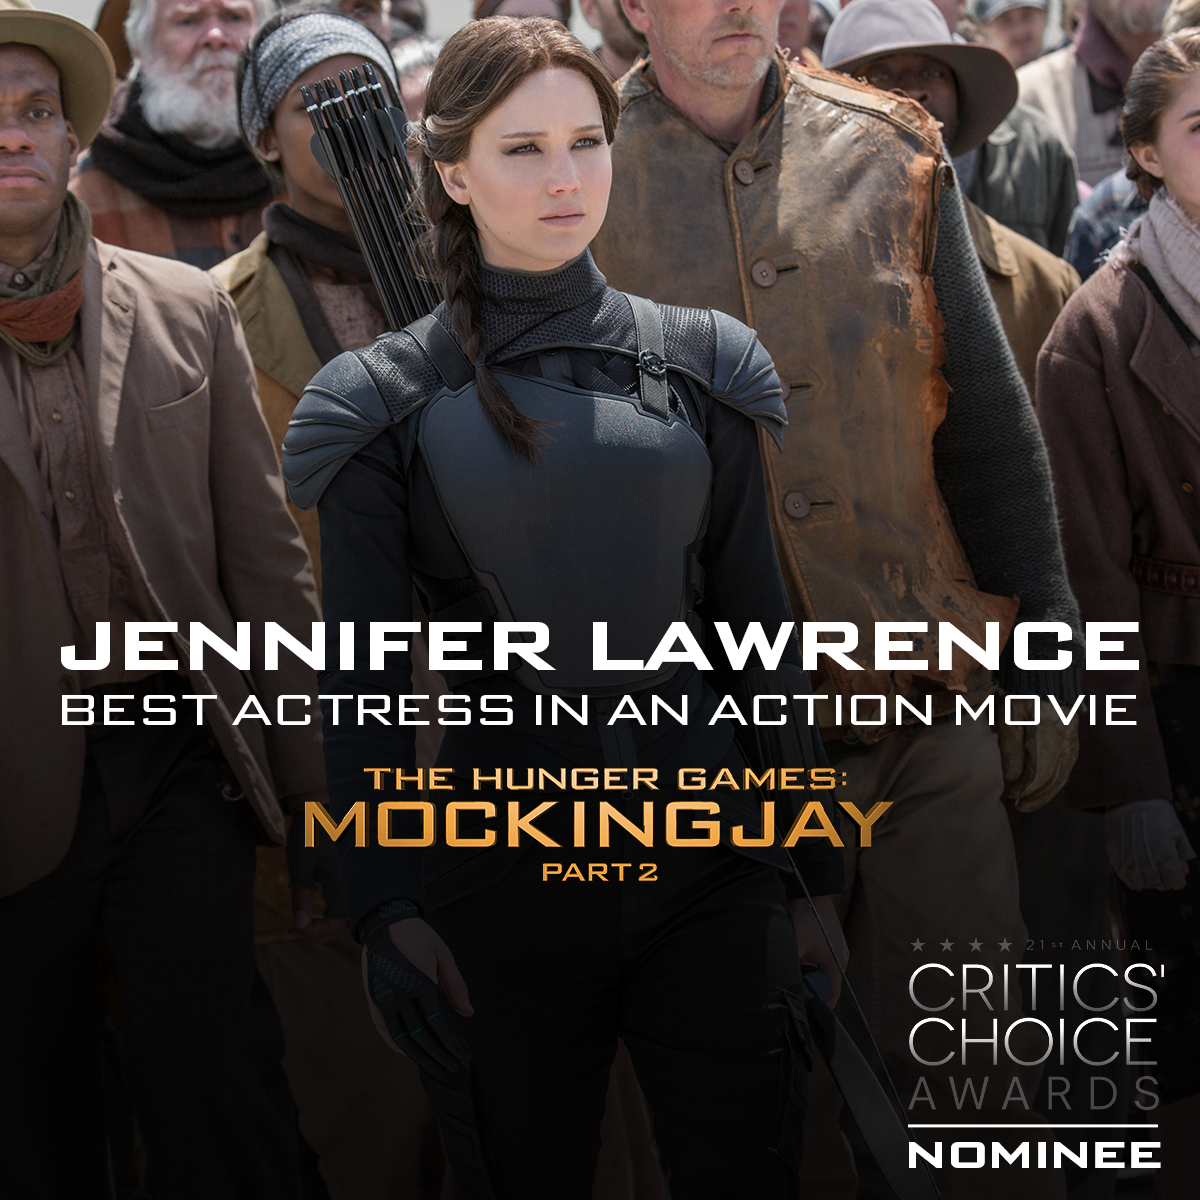 Congrats #MockingjayPart2's Jennifer Lawrence on Best Actress in an Action Movie @CriticsChoice nom! #CriticsChoice